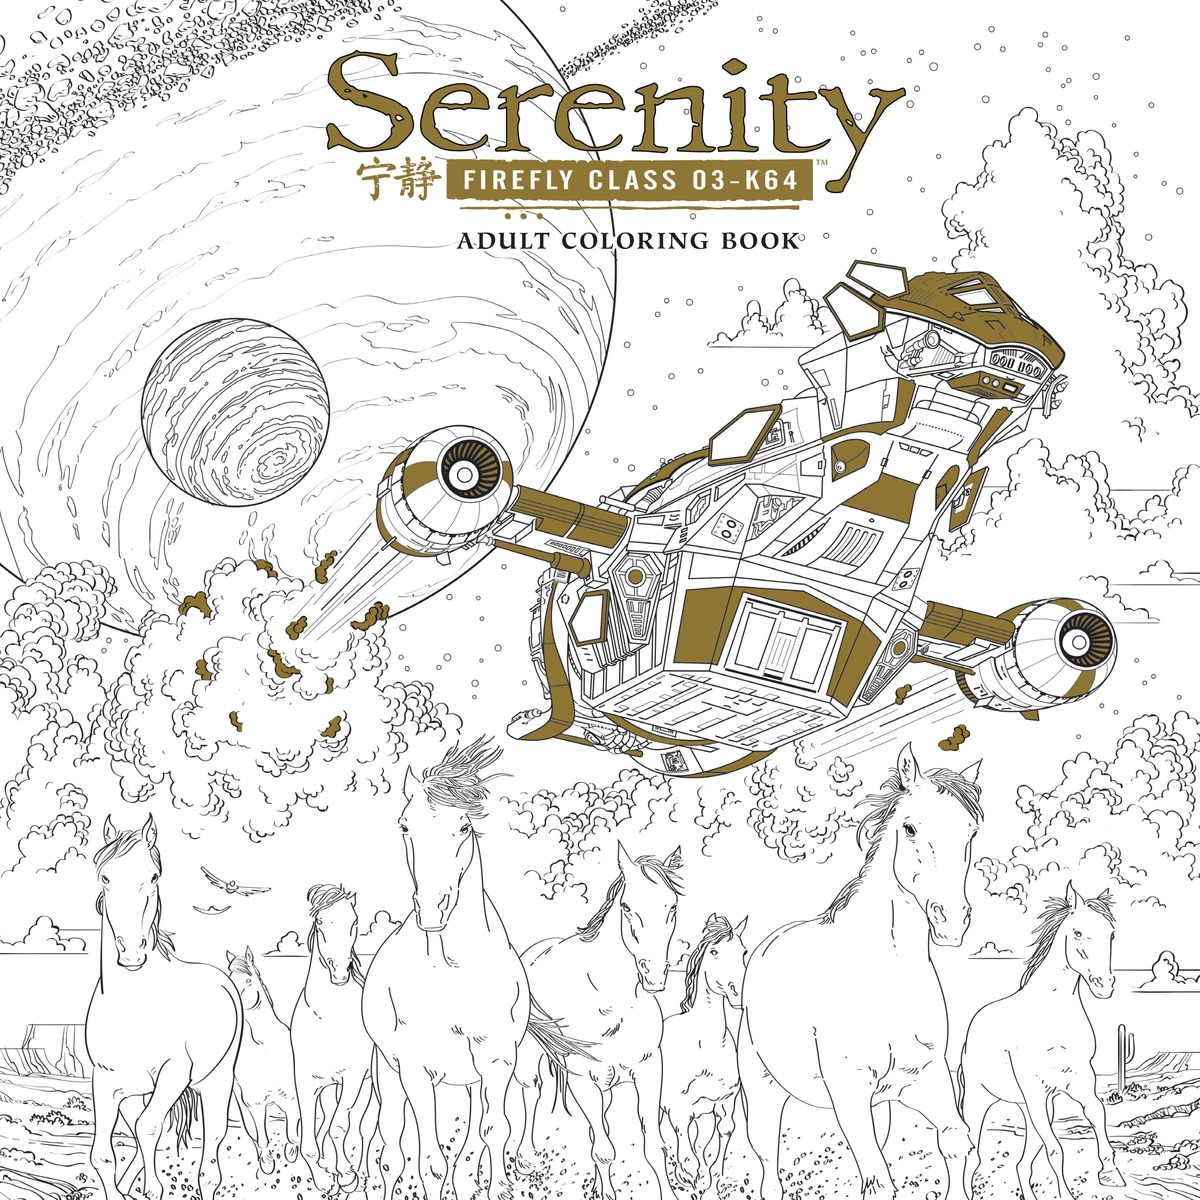 Serenity Adult Coloring Book coloring of trees